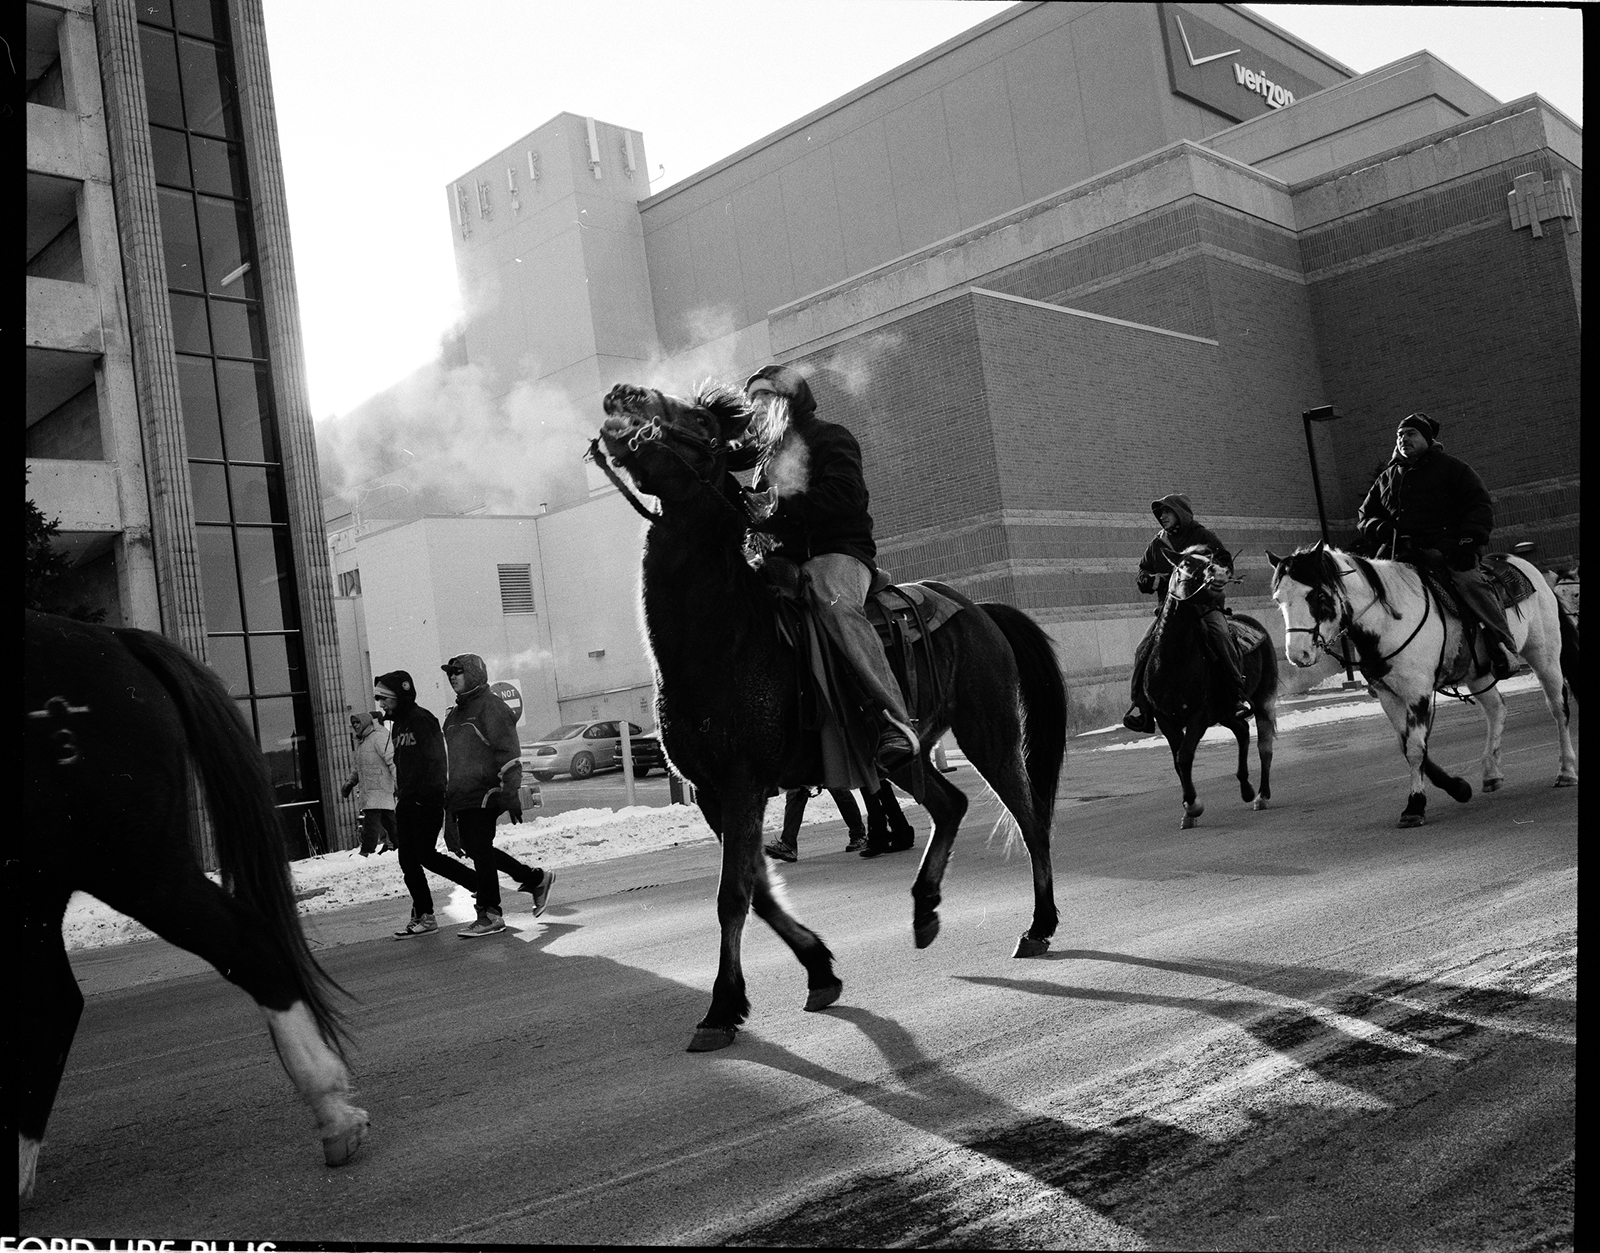 Photo credit: Andrew Lichtenstein, Dakota riders return to Mankato, 2012